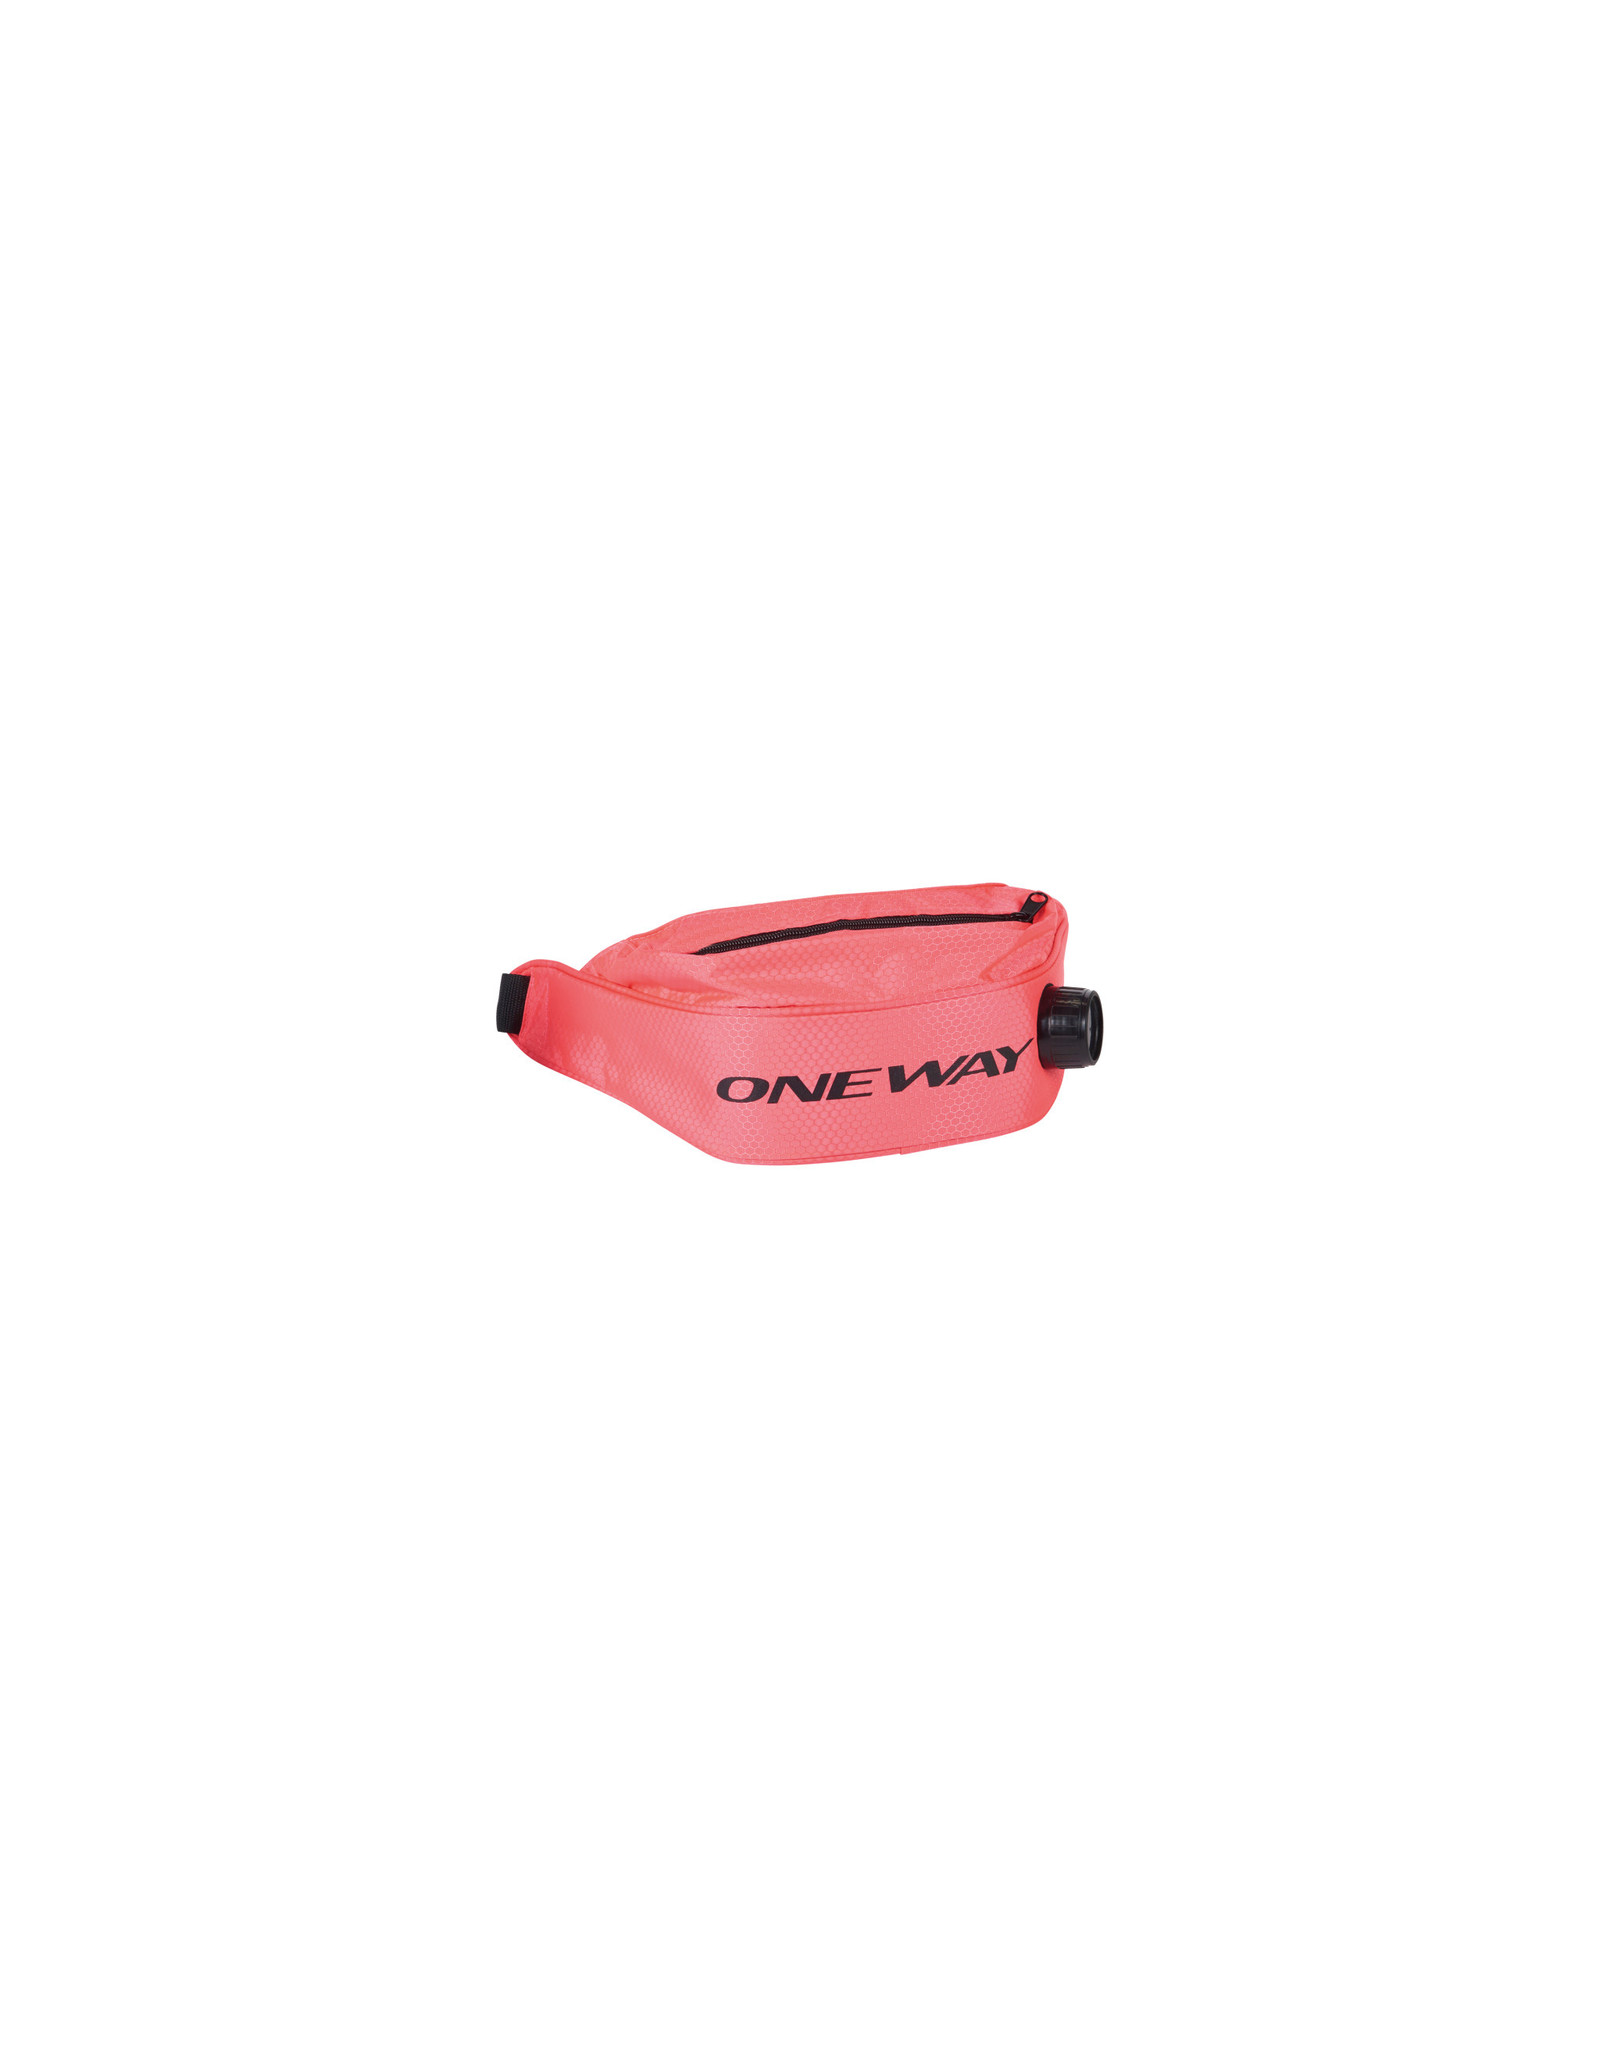 ONEWAY '20 ONE WAY, Drink Belt, Thermo